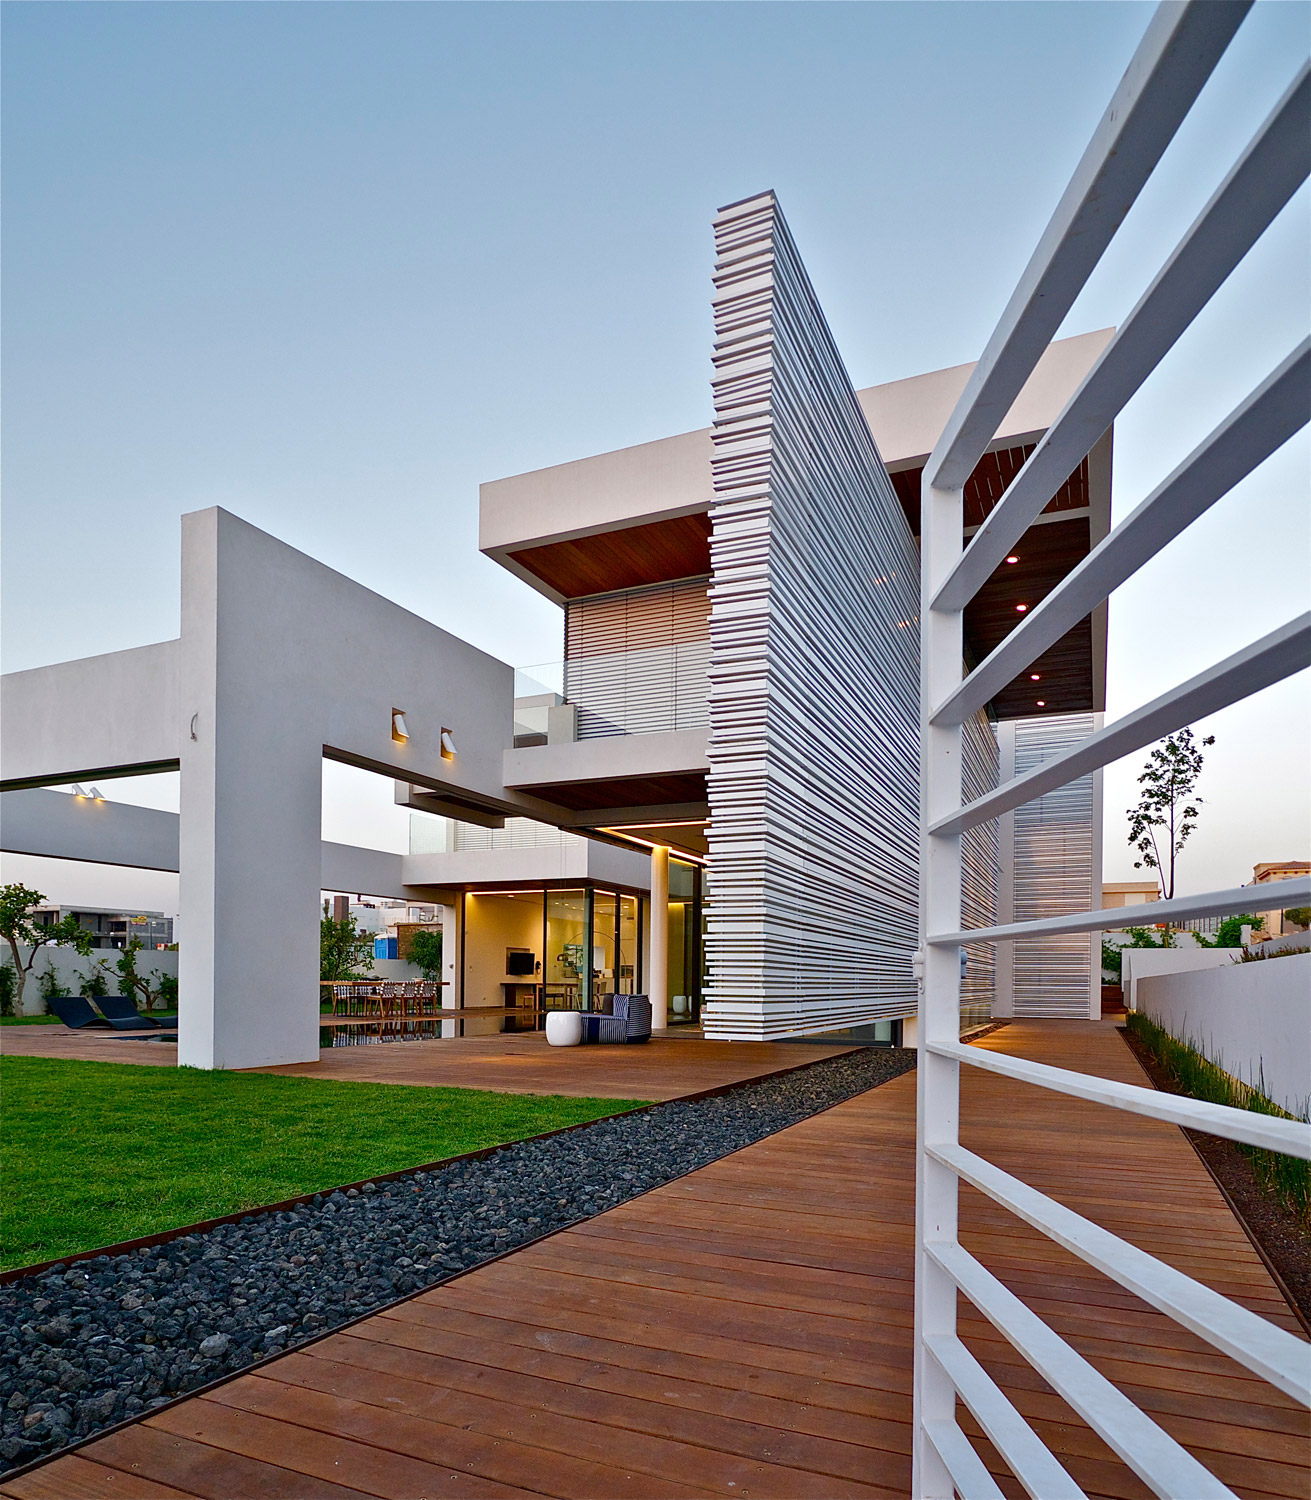 Modern Luxury Villas Designed By Gal Marom Architects: modern villa architecture design